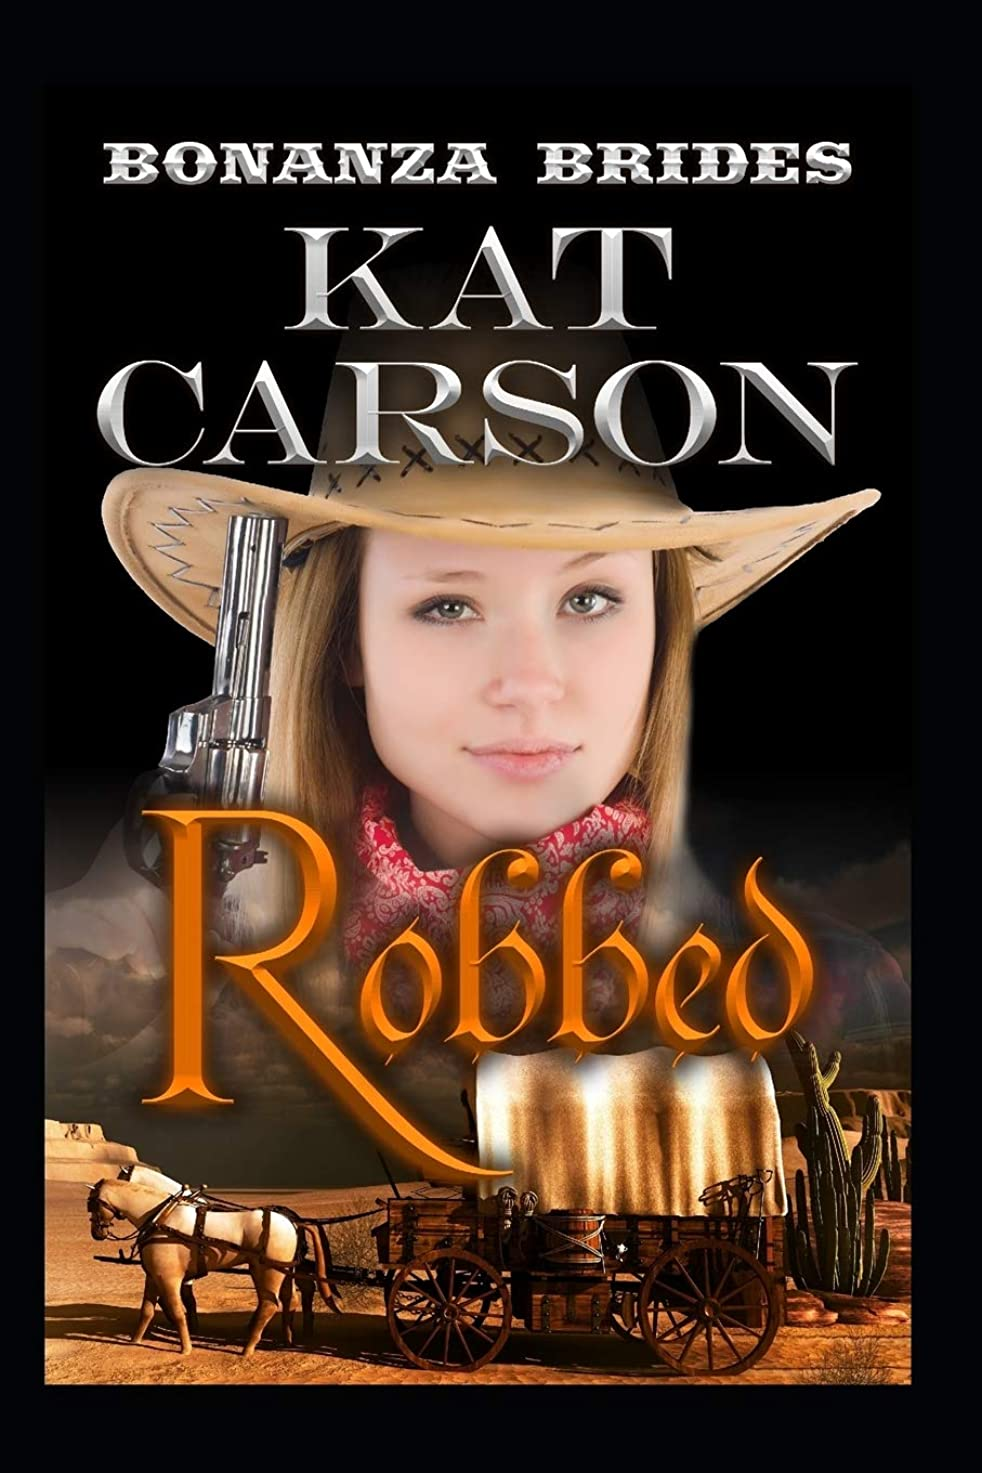 適格疲れた過度にRobbed (Bonanza Brides Find Prairie Love Series)